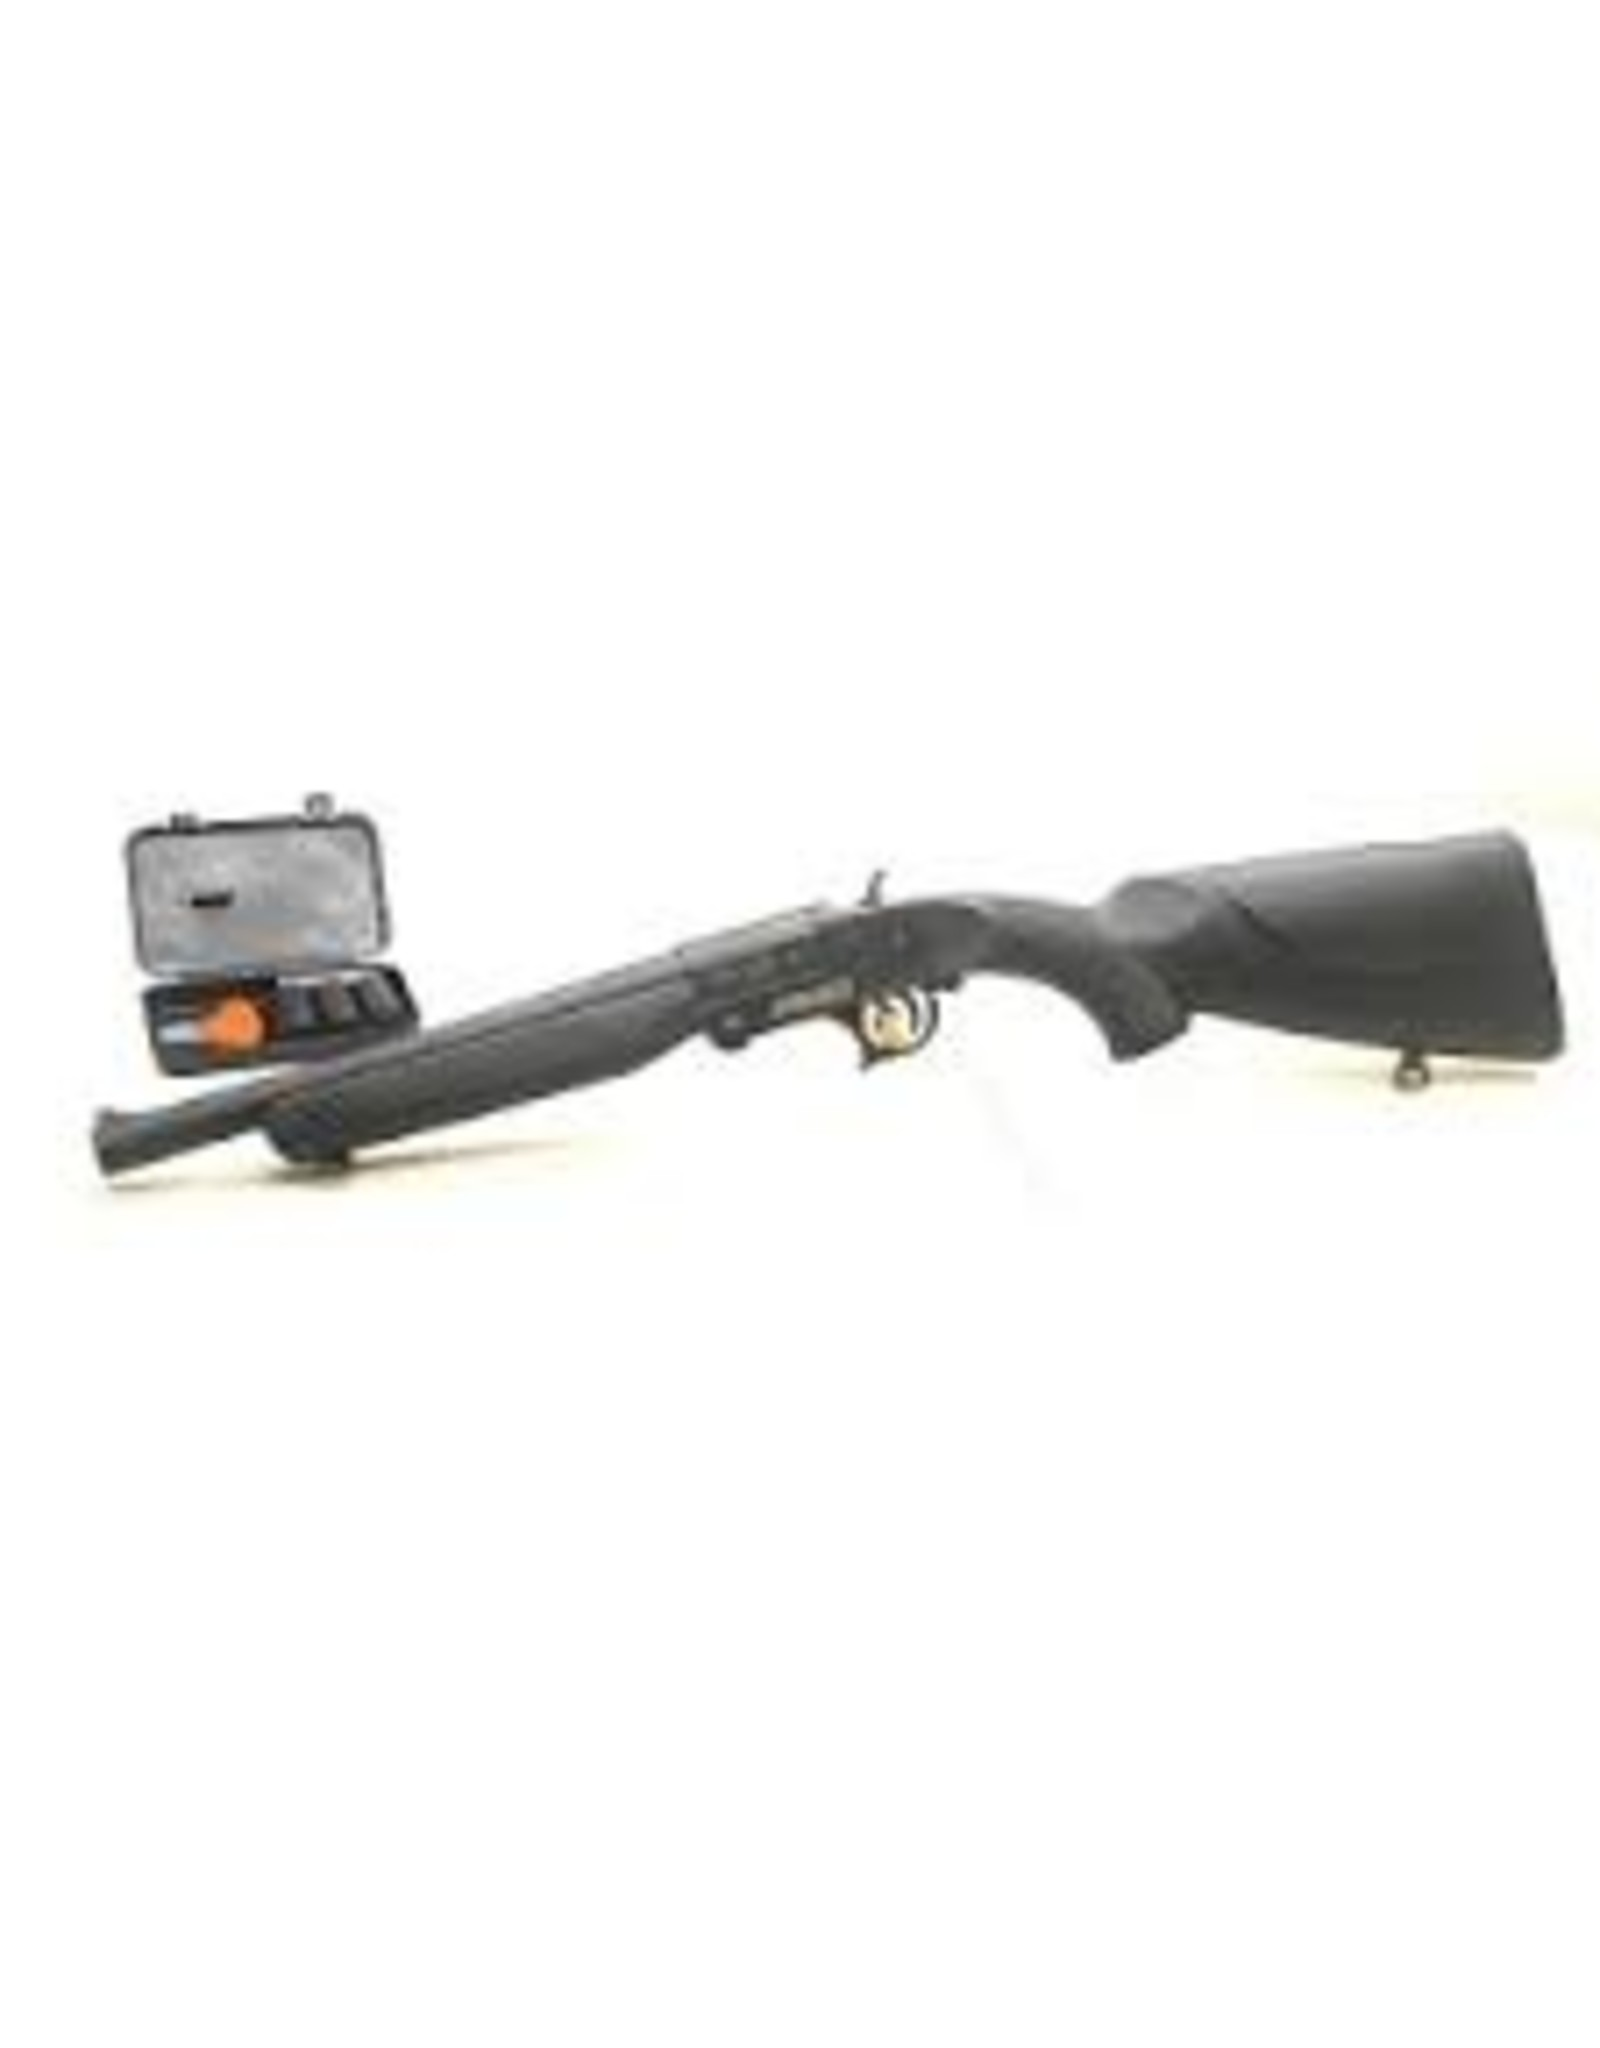 "Armed Armed Single Shot Shotgun Sash .410 16"" Barrel"